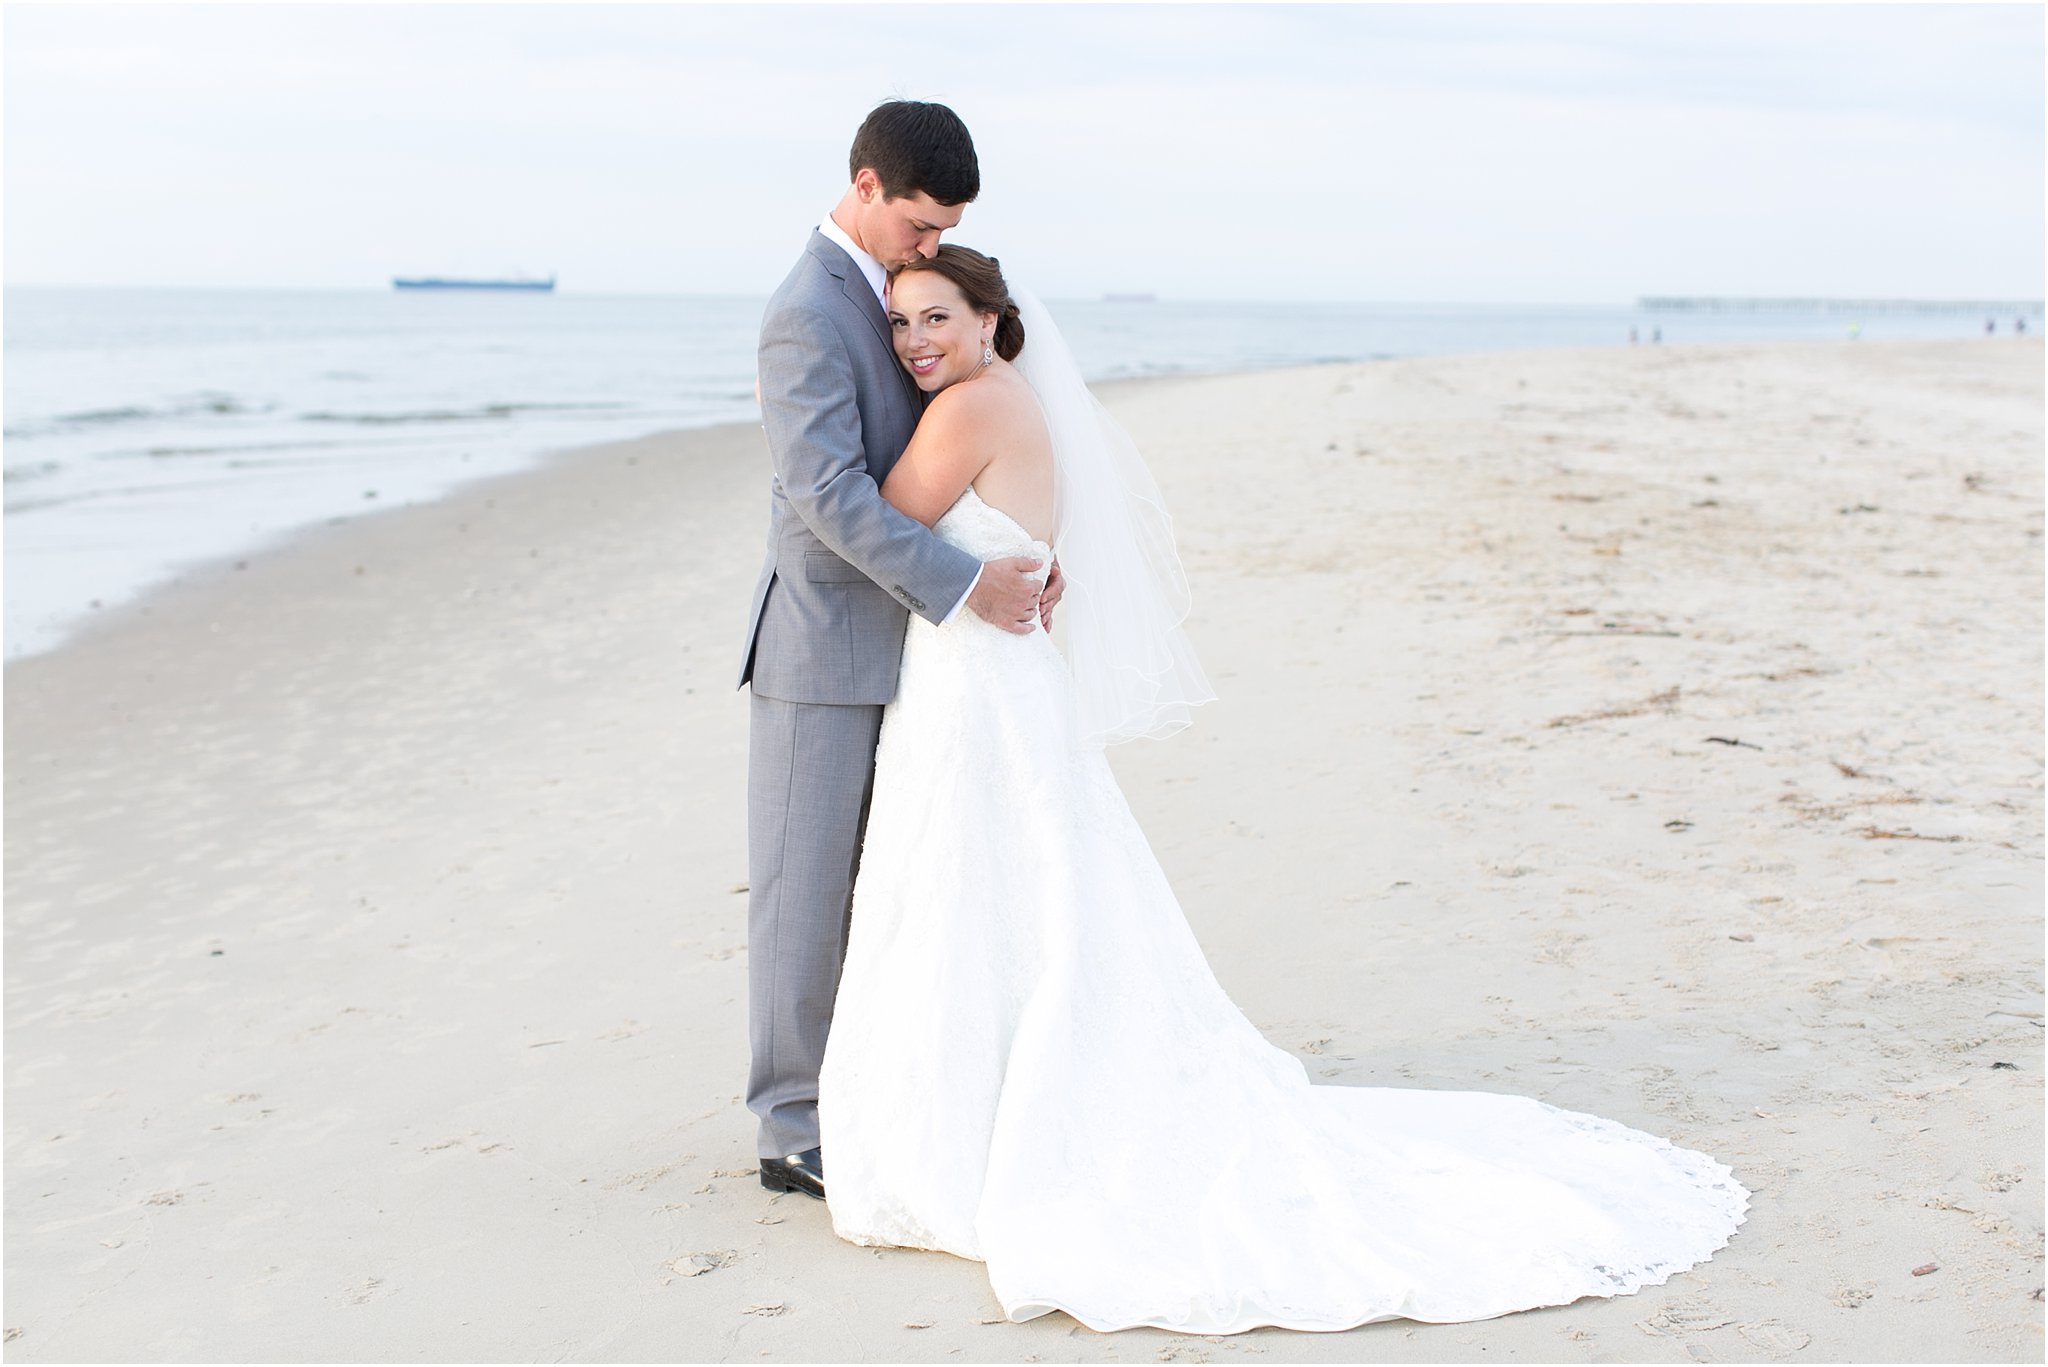 jessica_ryan_photography_wedding_photography_virginiabeach_virginia_candid_authentic_wedding_portraits_marina_shores_yacht_club_chesapeake_bay_1885